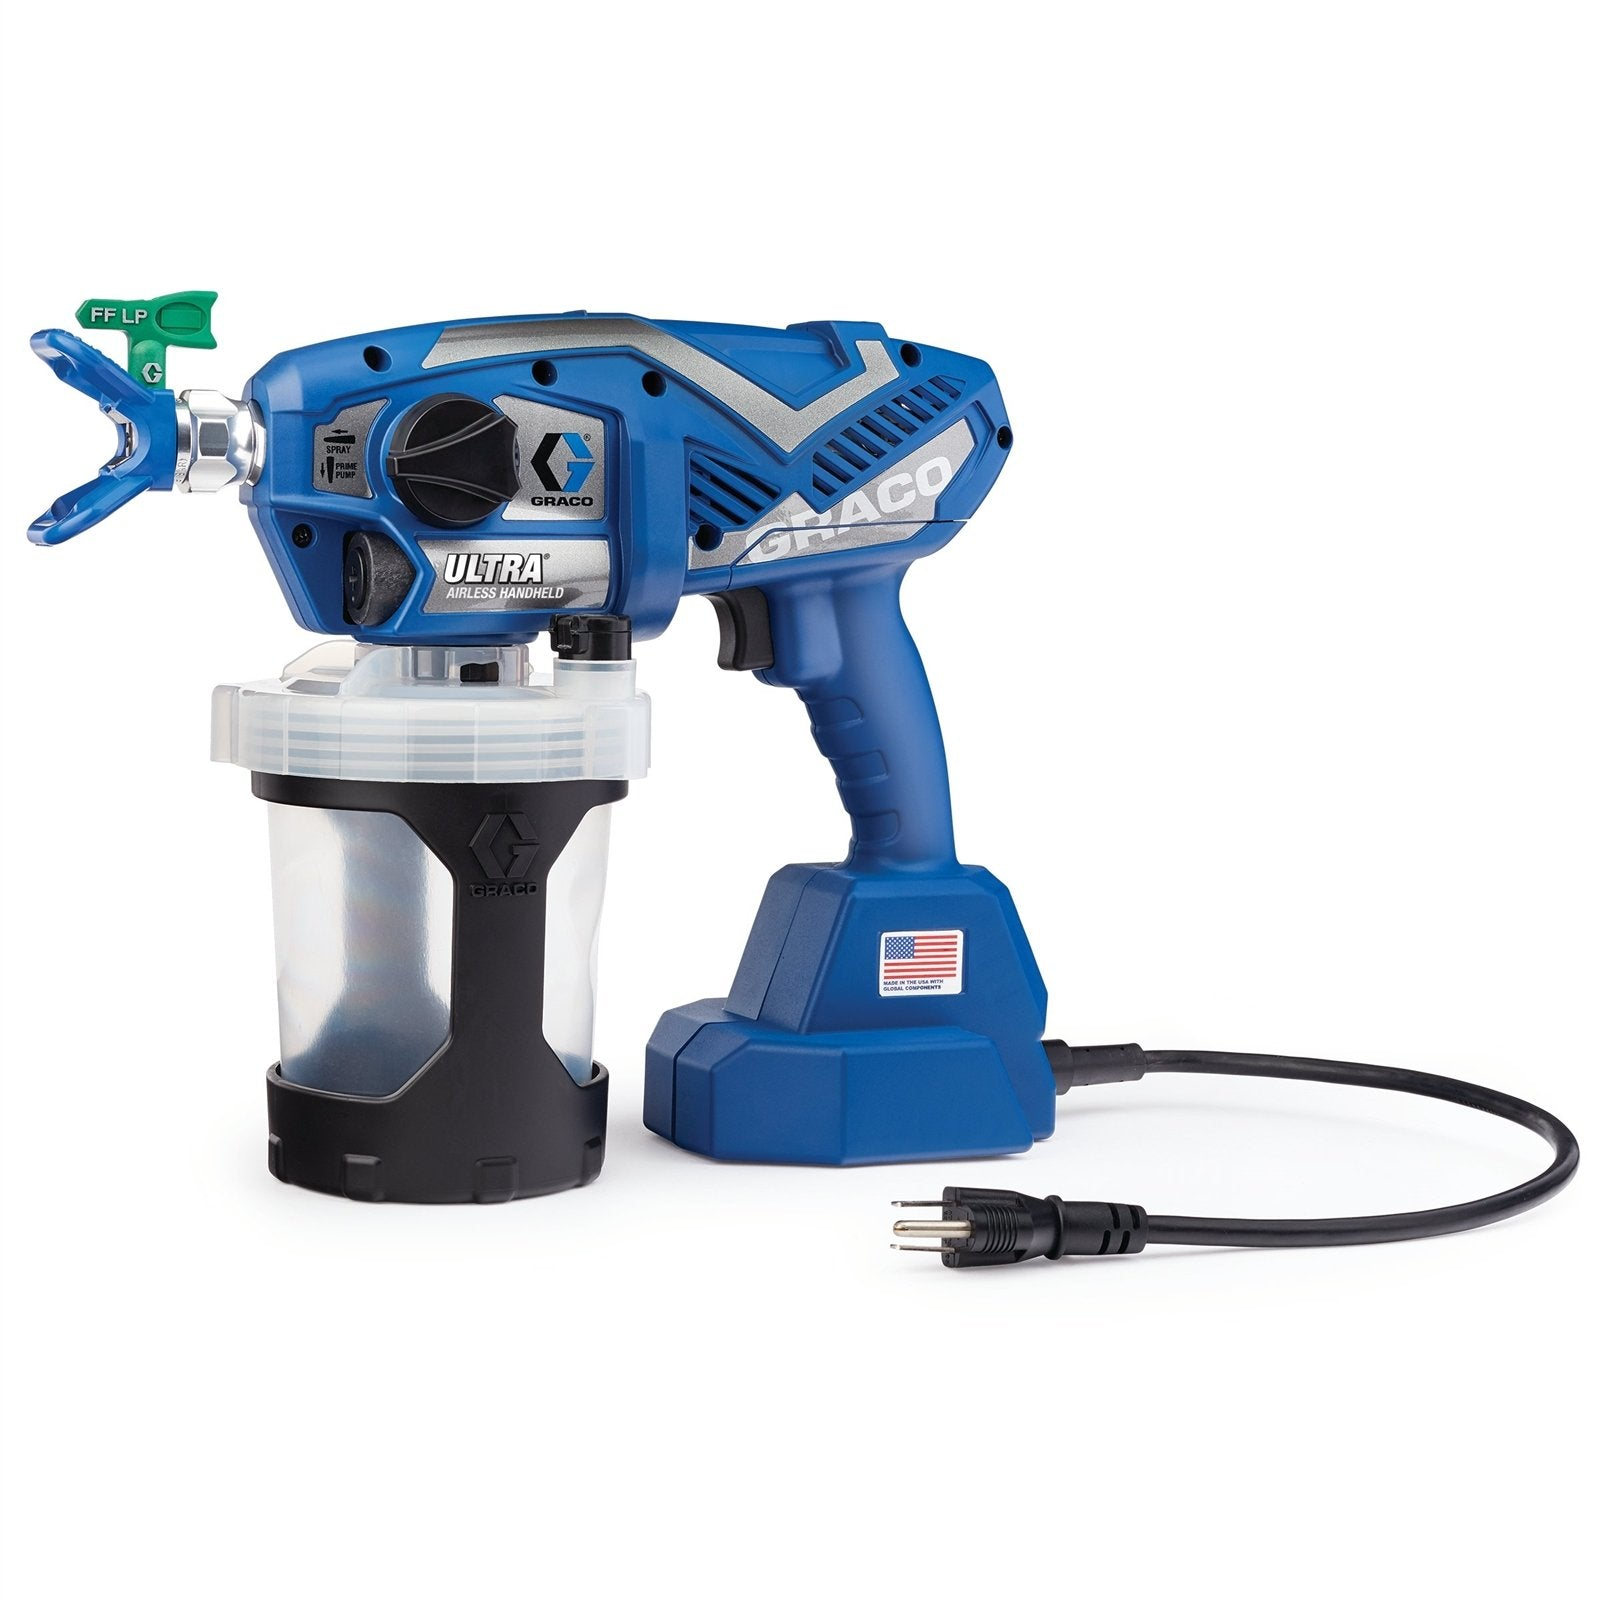 Graco Ultra Corded Handheld Paint Sprayer, available at Aboff's in New York and Long Island.